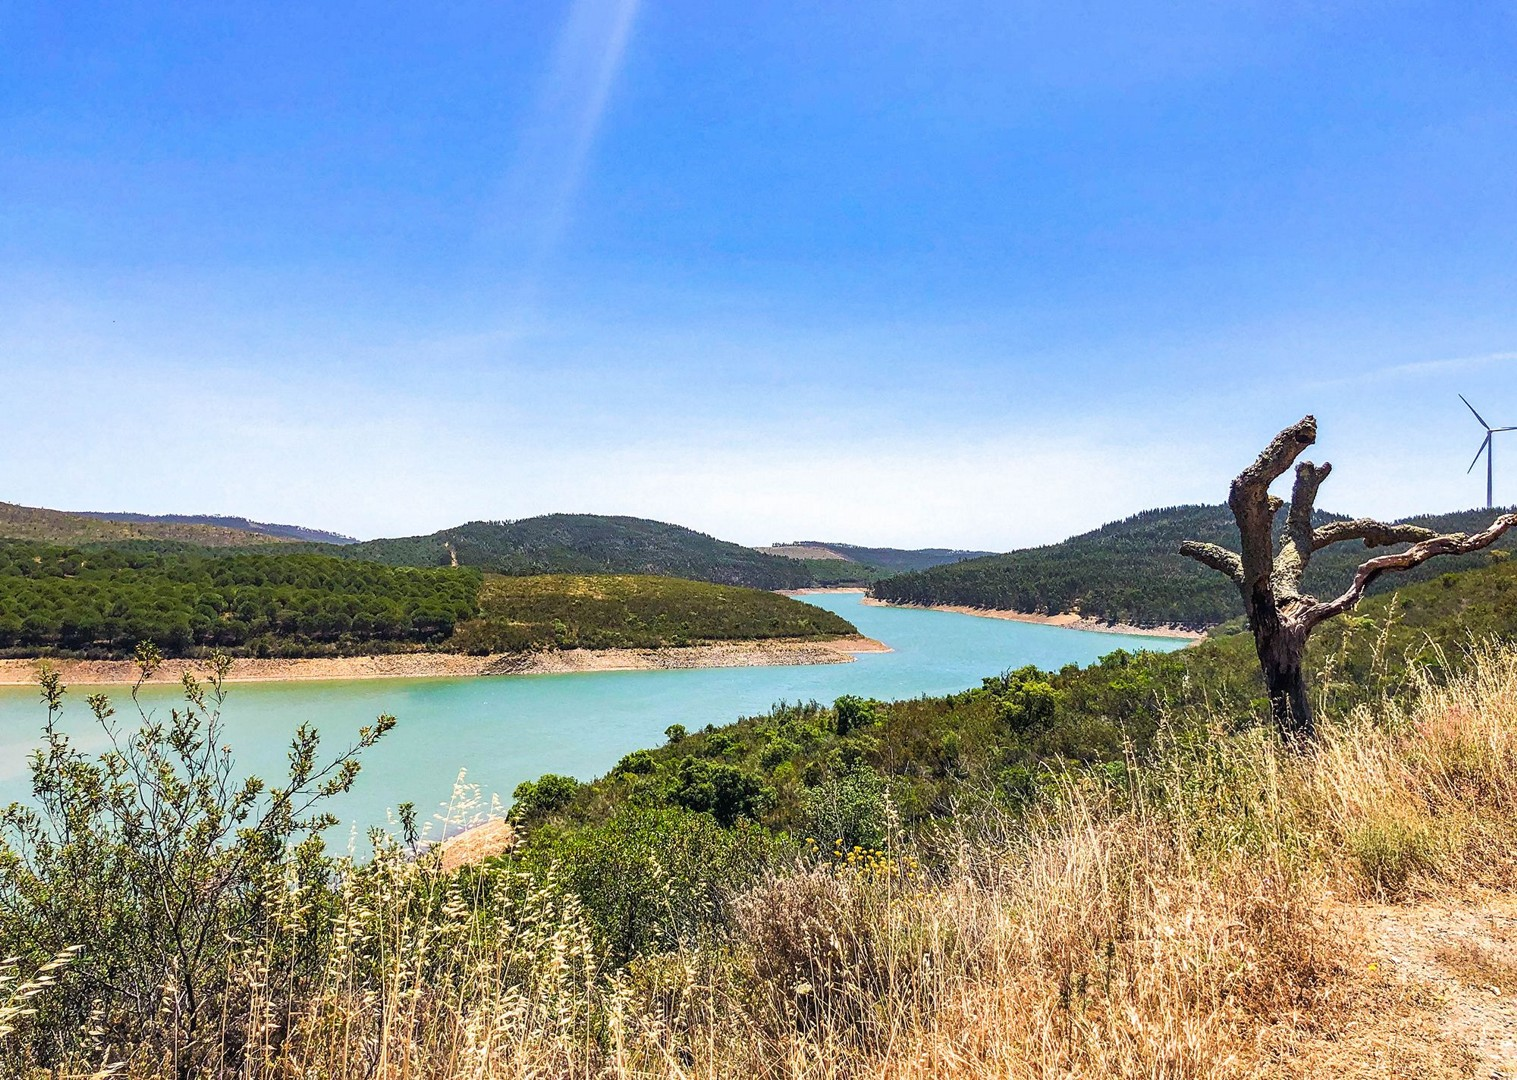 self-guided-portugal-leisure-cycling-holiday-saddle-skedaddle-trips.jpg - Portugal - Alentejo and Algarve Coastal Explorer - Self-Guided Leisure Cycling Holiday - Leisure Cycling